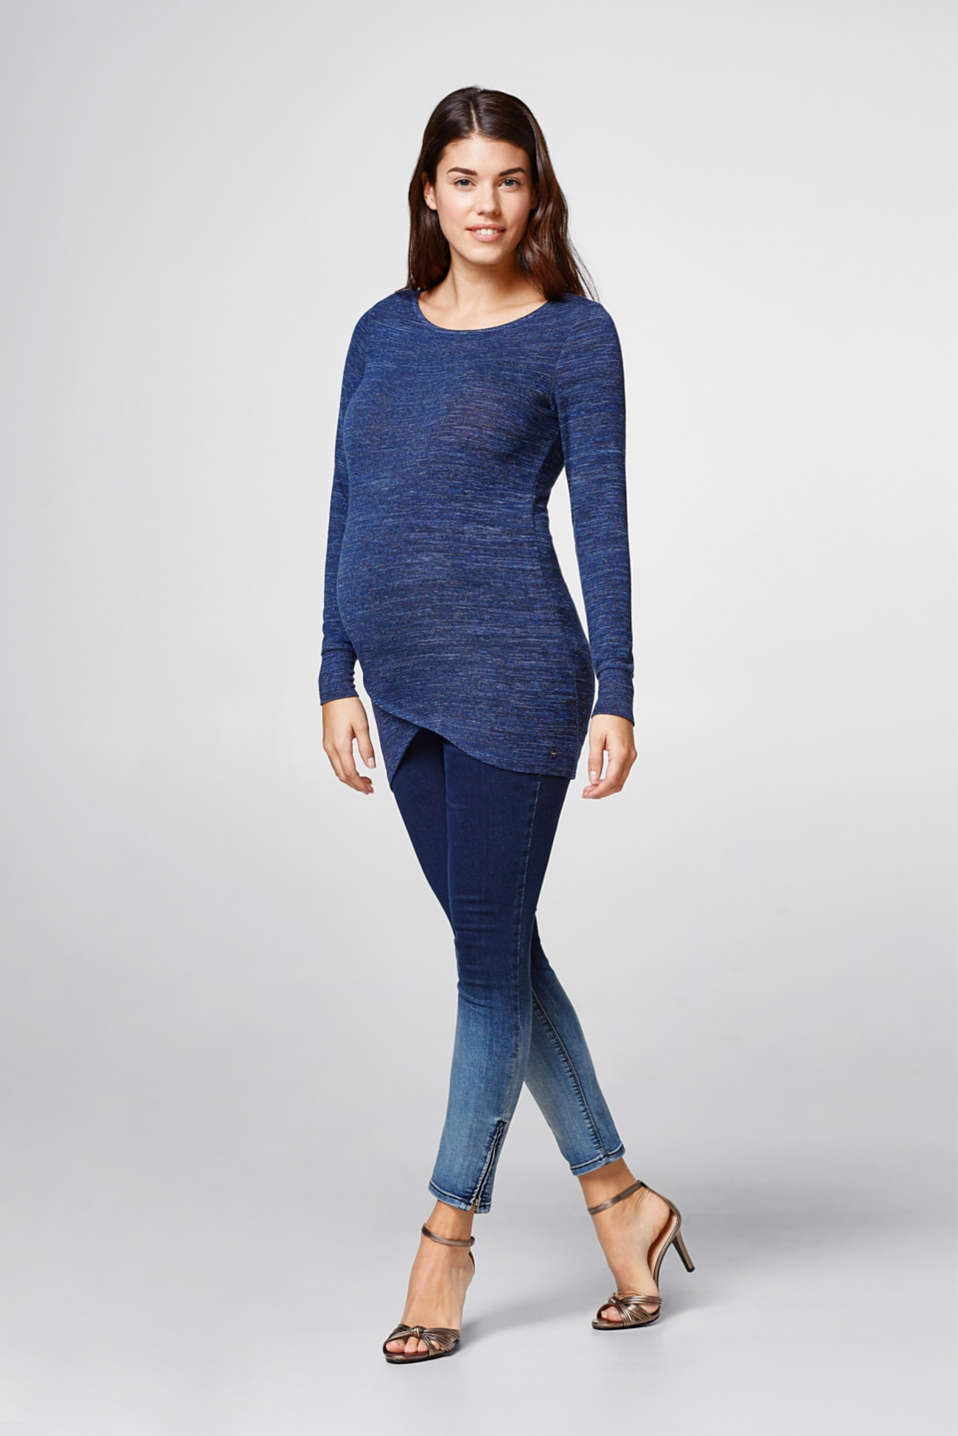 Soft melange long sleeve top, layered hem